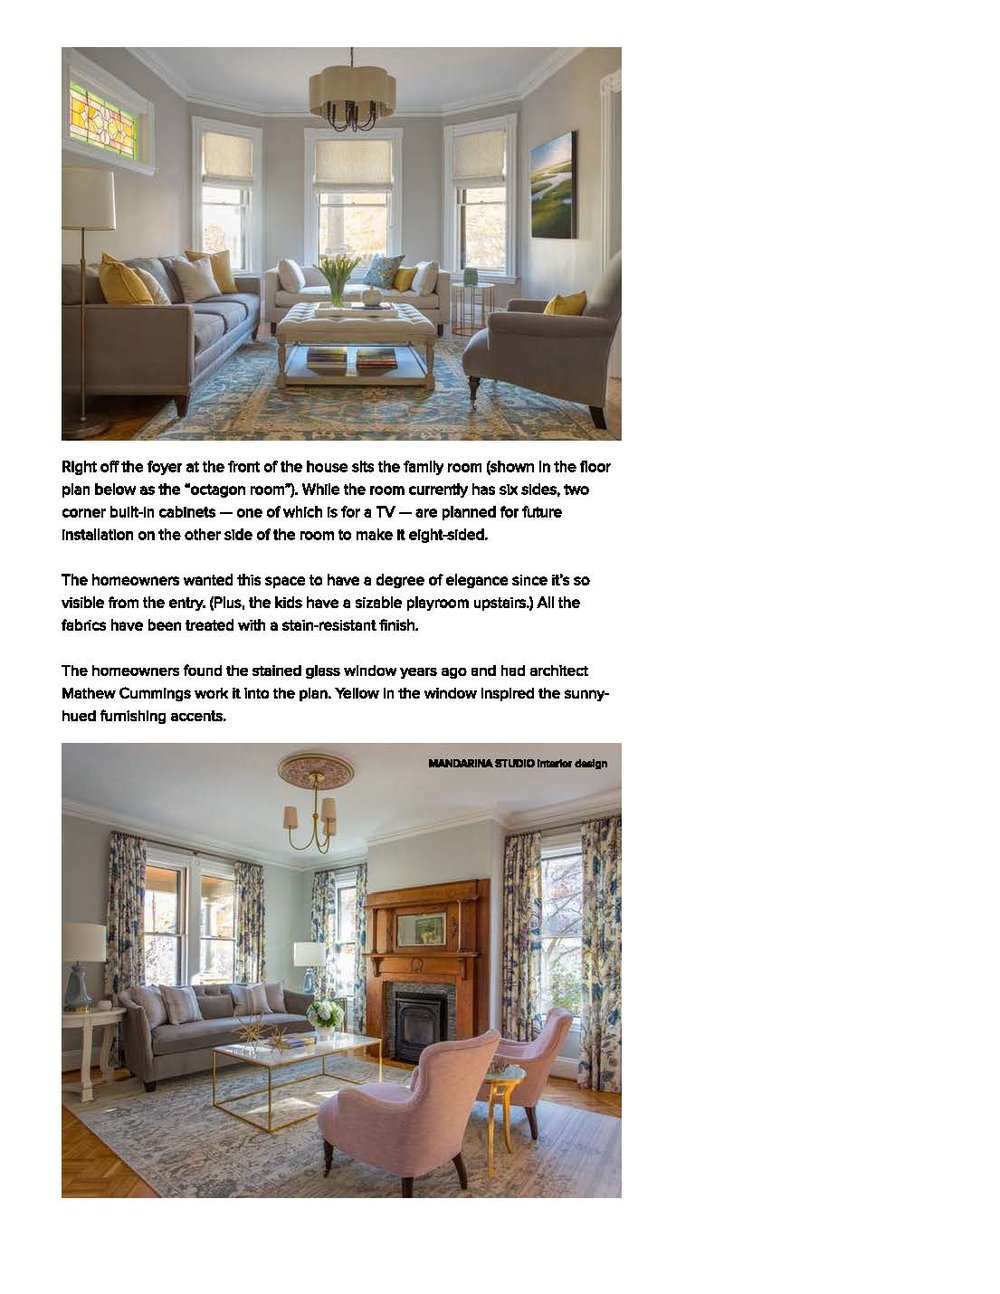 Houzz Tour_ The Remaking of a Queen Anne in Boston (1)_Page_04.jpg